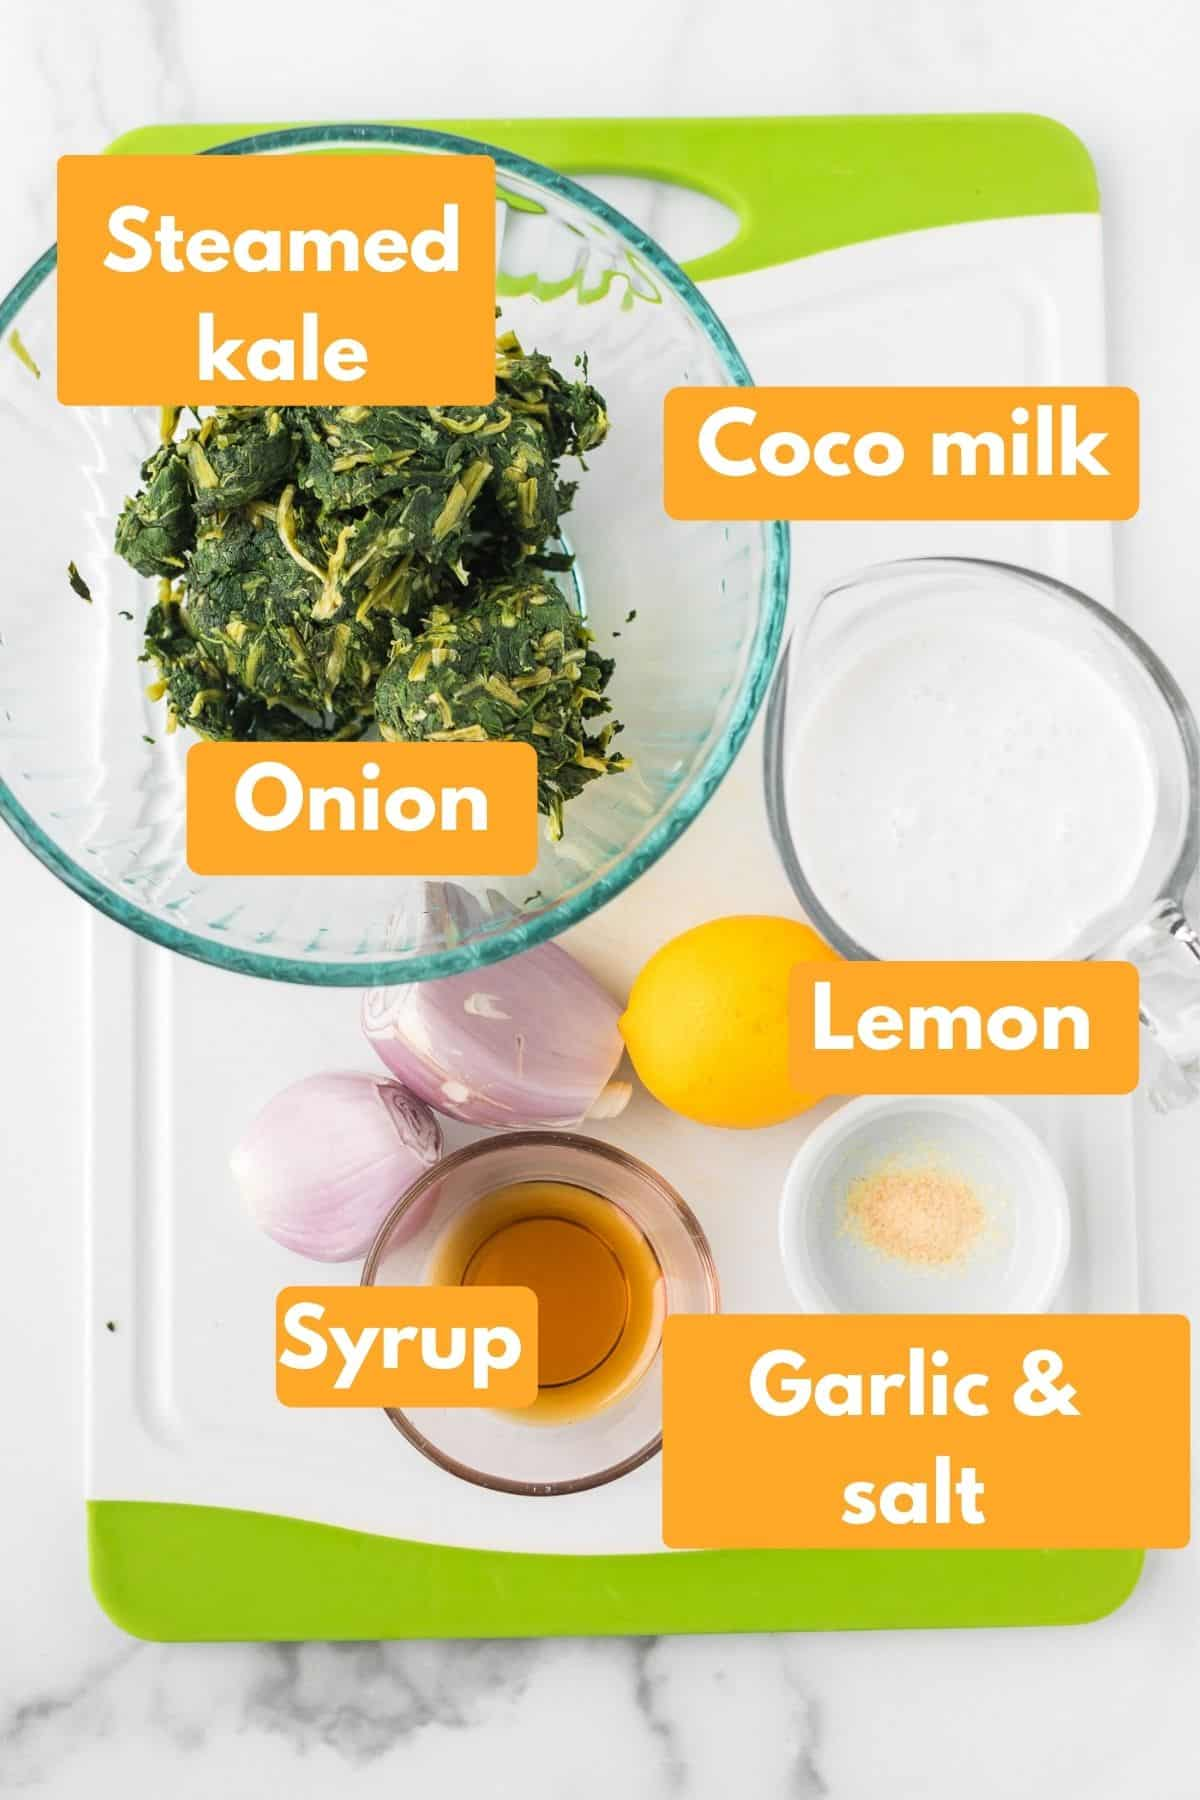 labeled ingredients for creamed kale recipe